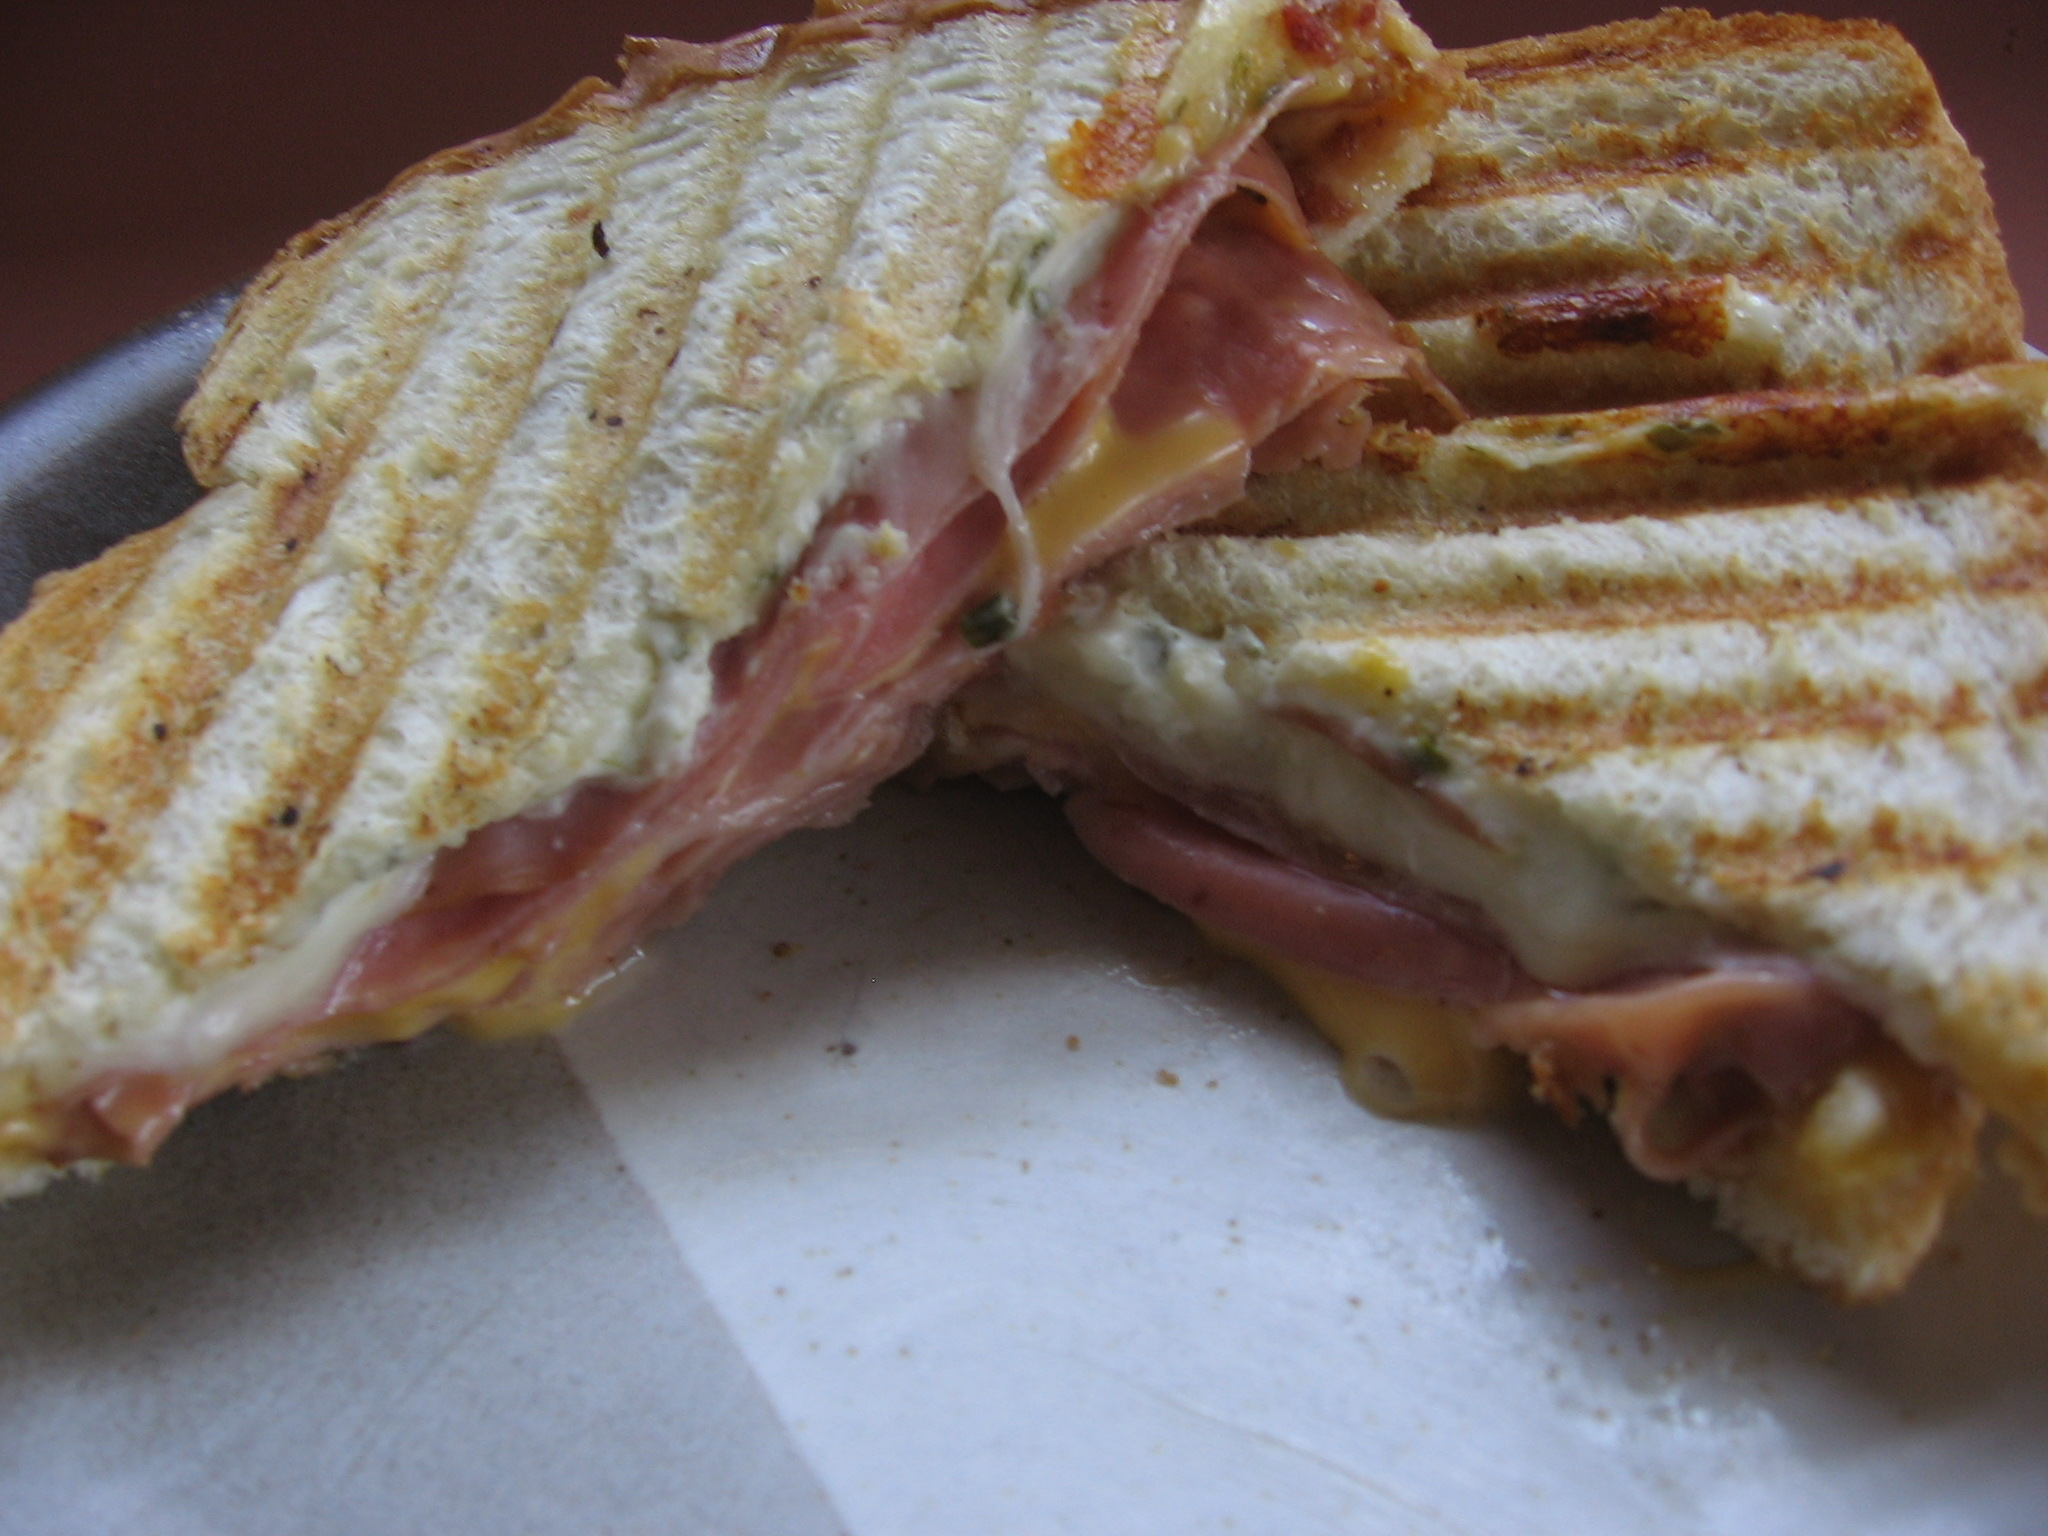 Joe's Panini with homemade cranberry/dijon Sauce picture